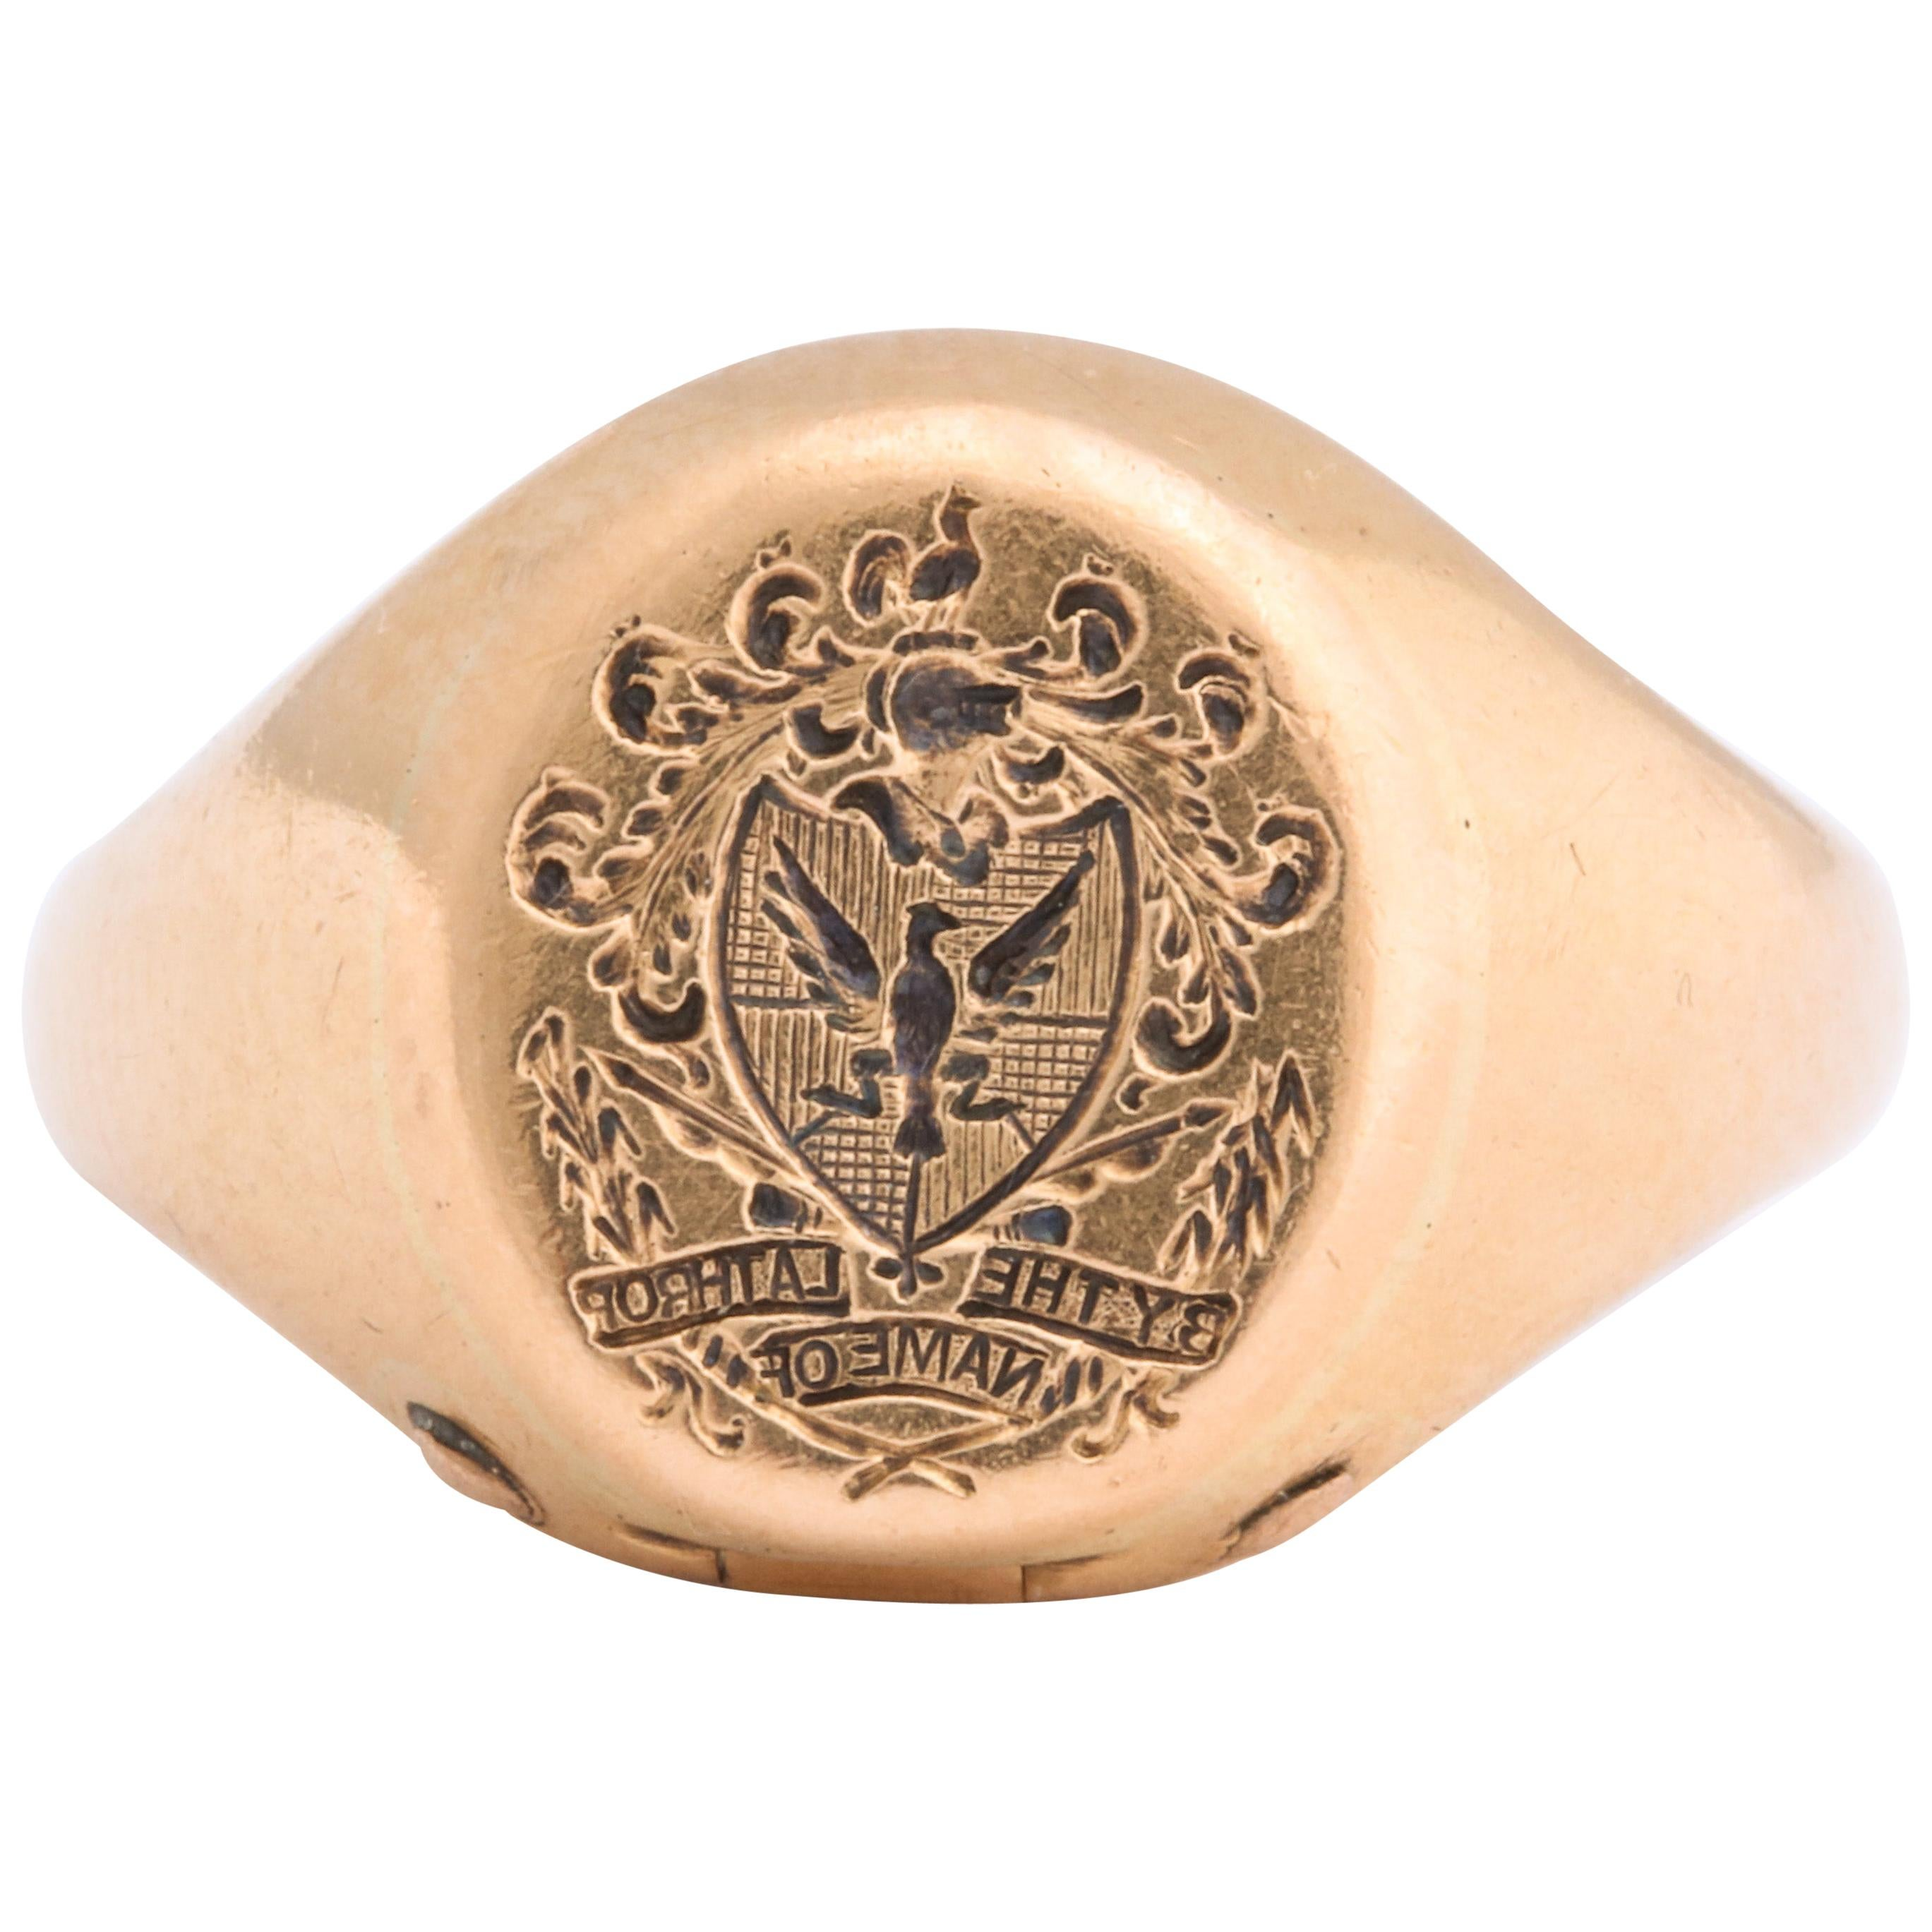 Antique Victorian Signet Ring with Hidden Key Attached